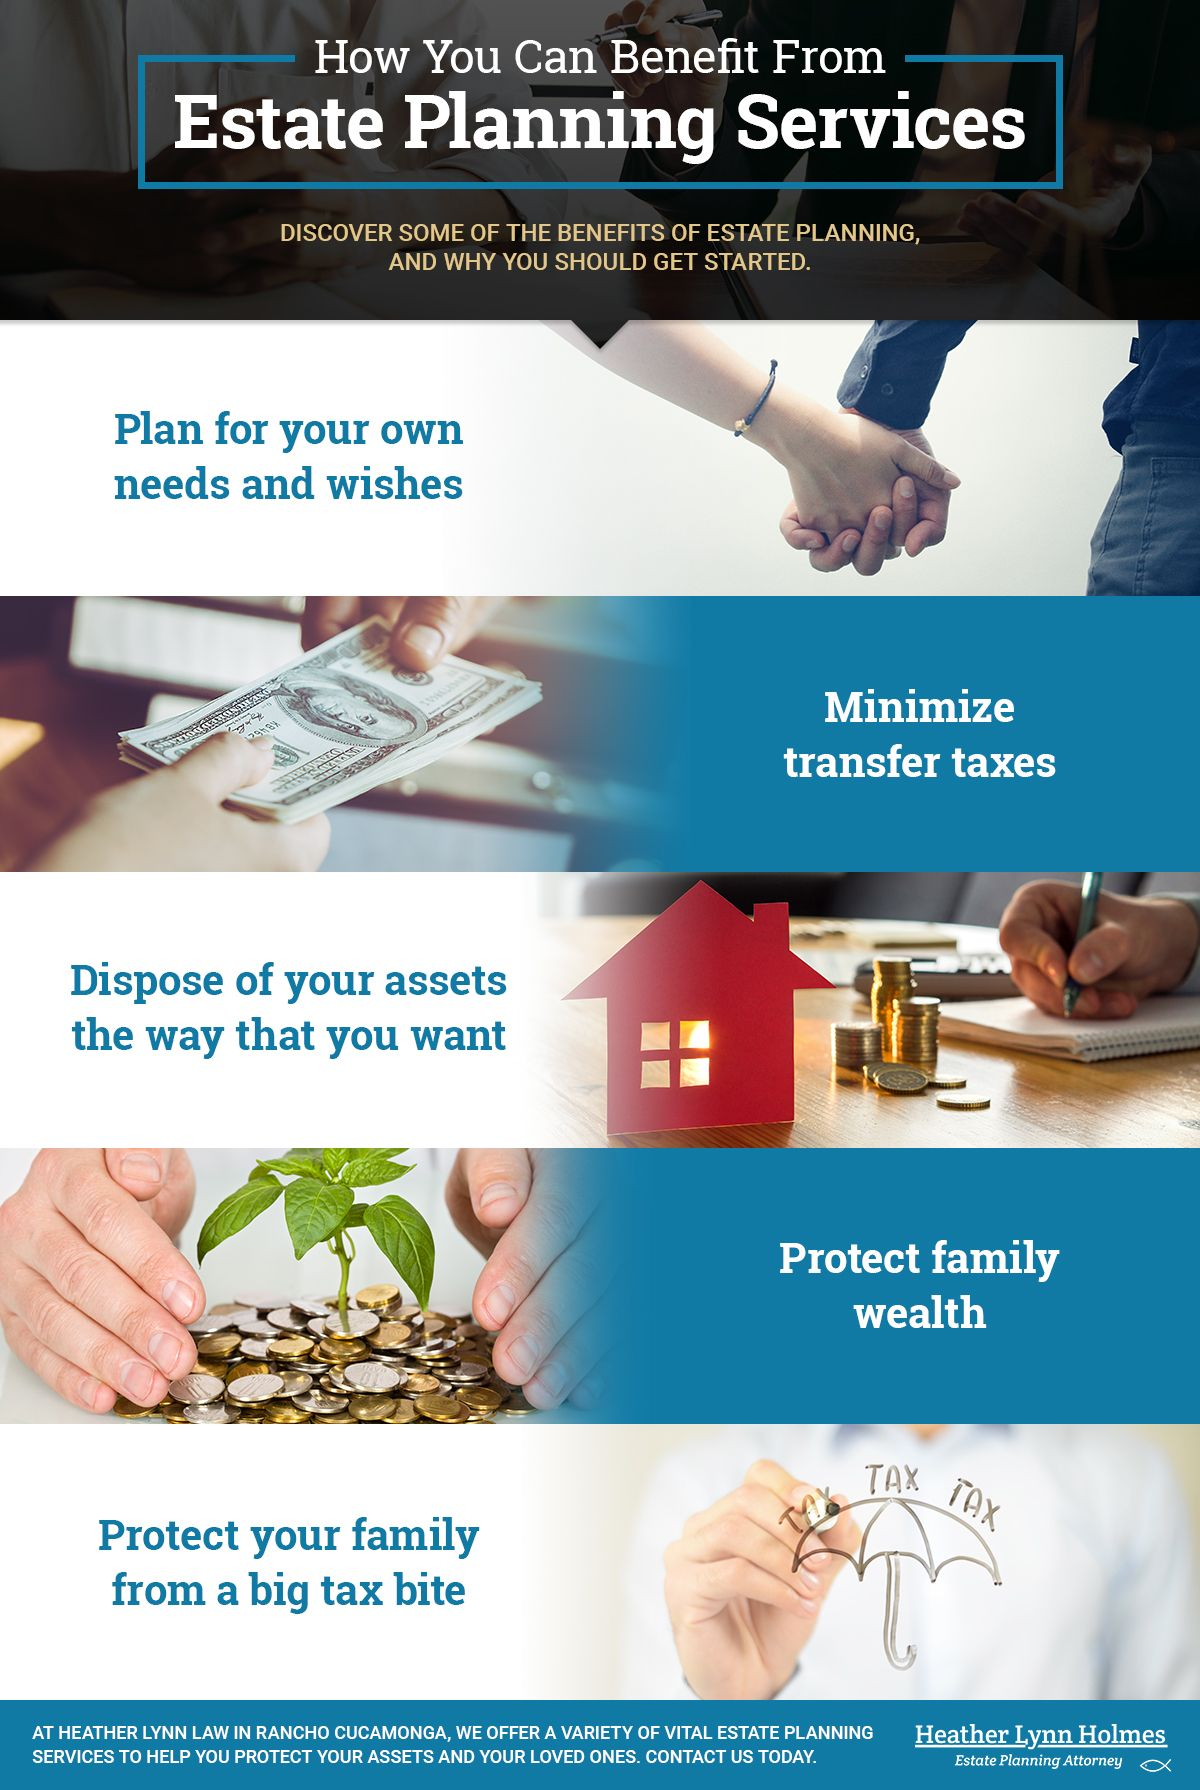 How-You-Can-Benefit-From-Estate-Planning-Services-infographic-5f724c70371b8.jpg